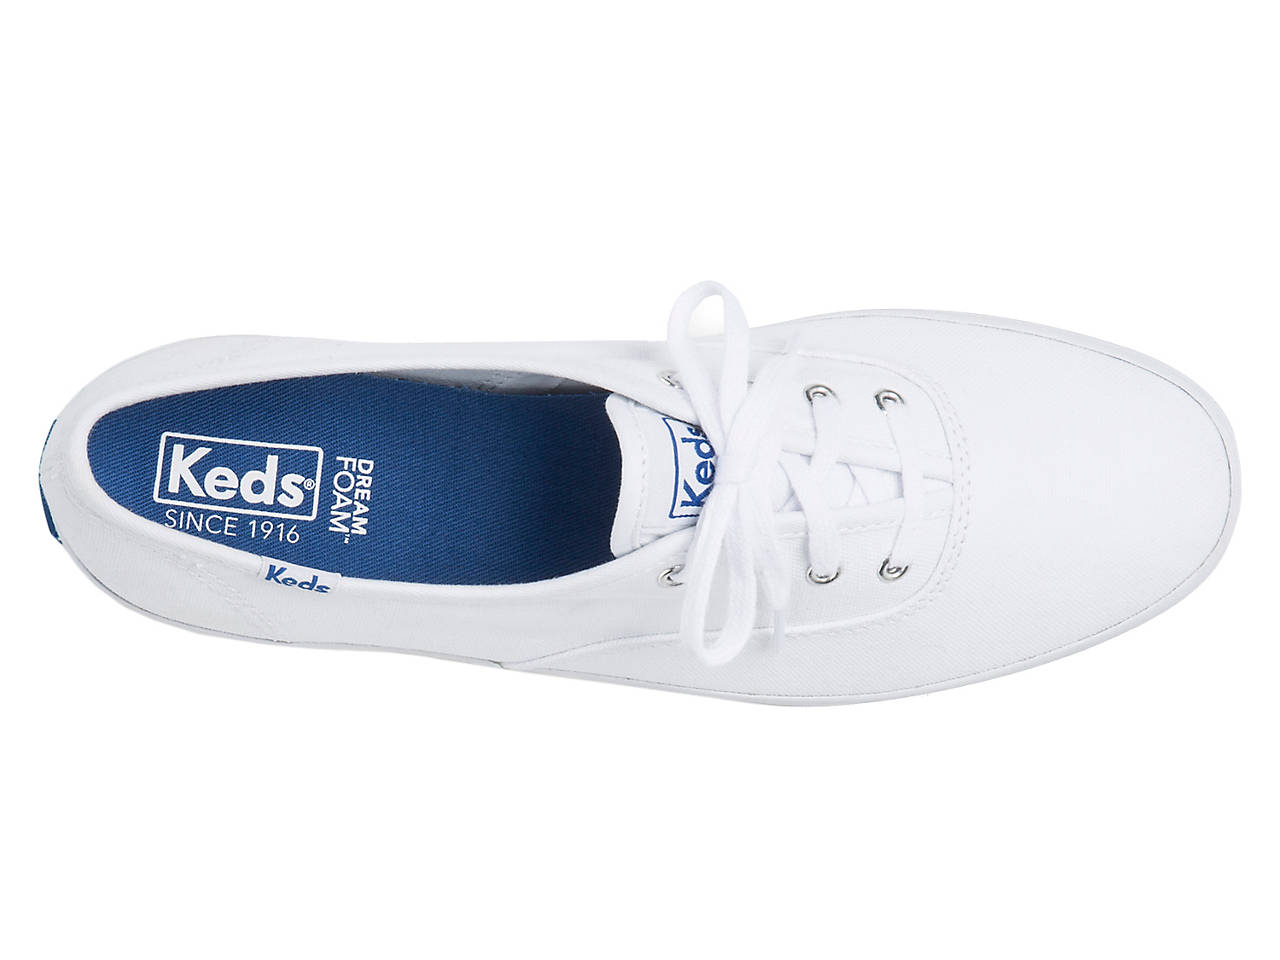 9644d95c794 Keds Champion Sneaker - Women s Women s Shoes